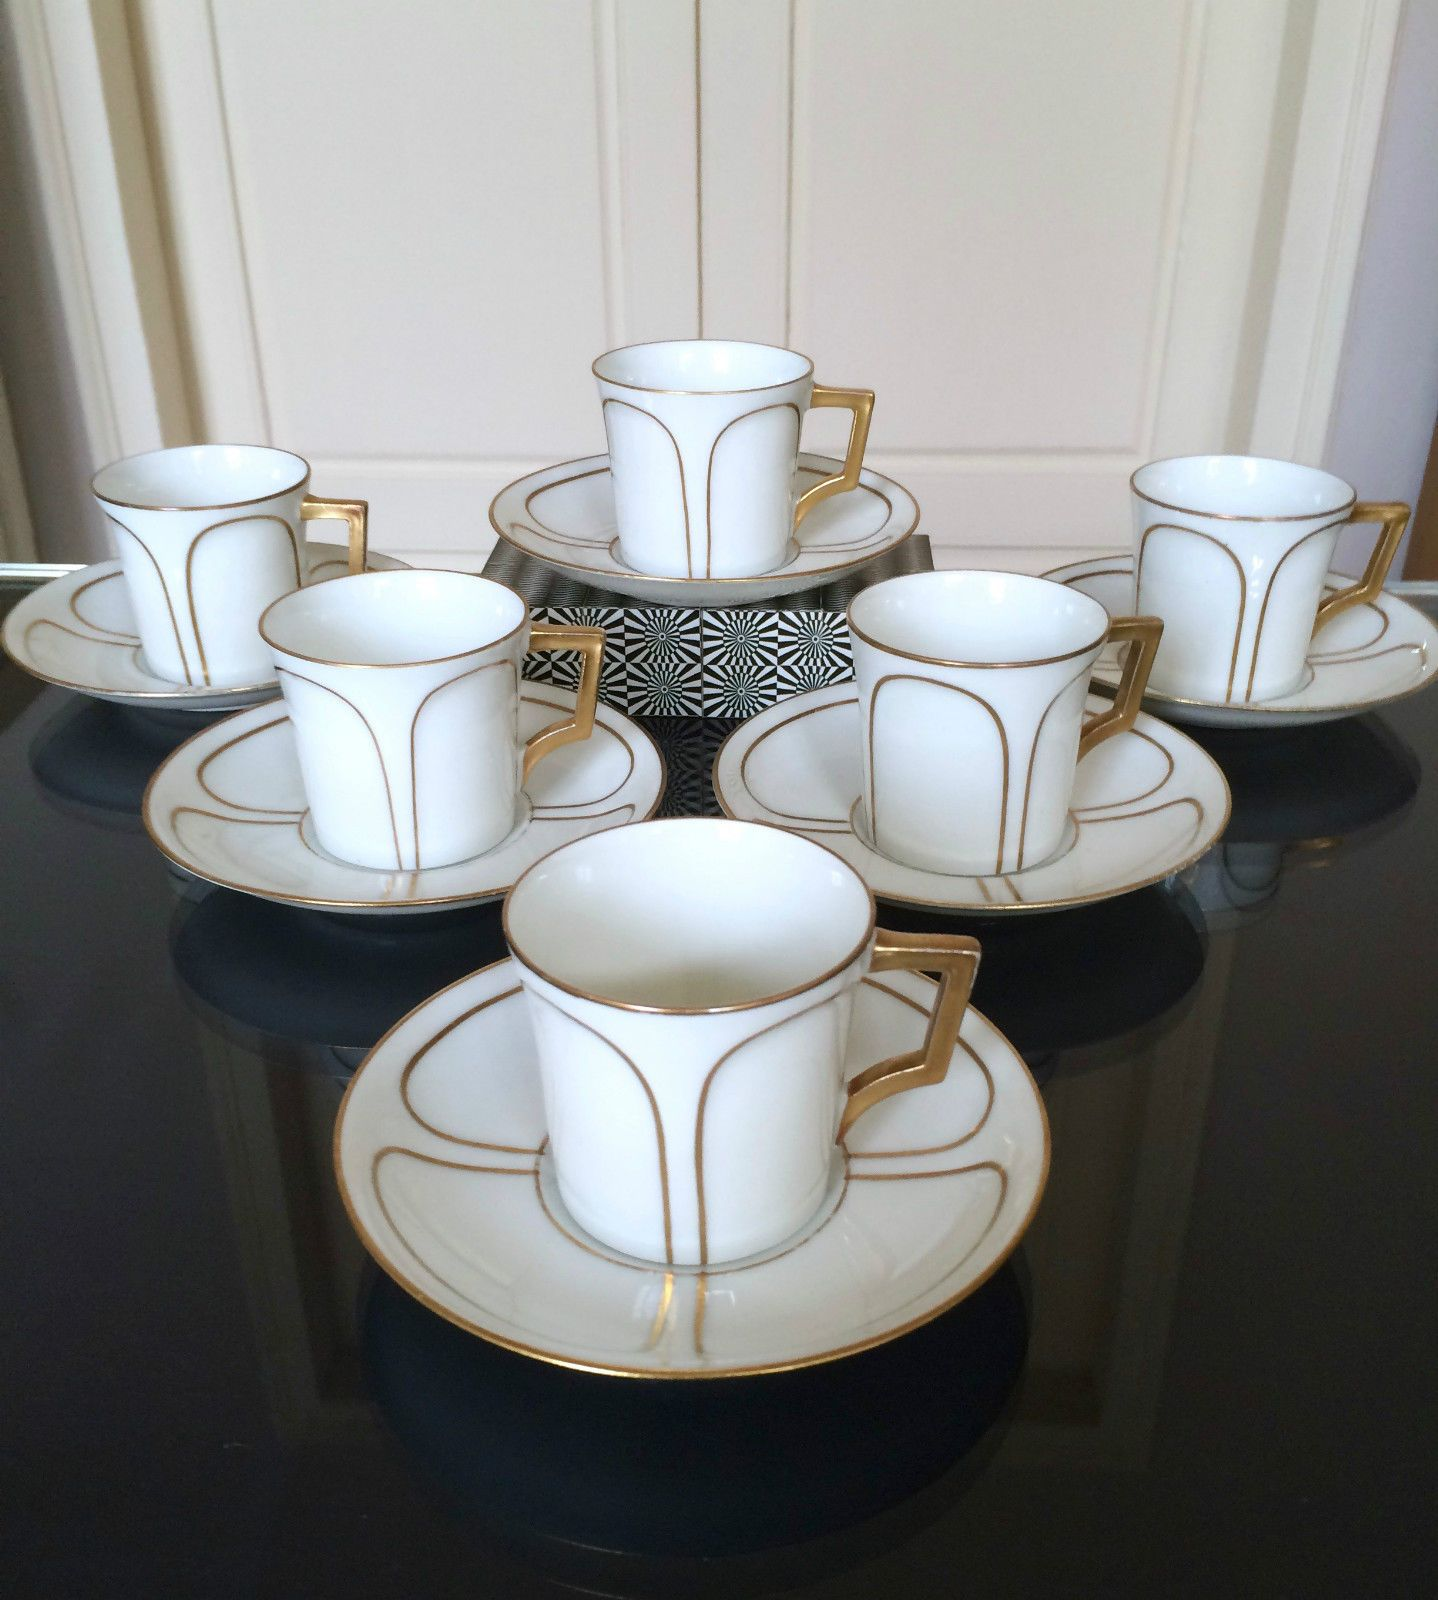 6 tasses caf art d co en porcelaine de limoges lanternier ebay art deco limoges porcelain. Black Bedroom Furniture Sets. Home Design Ideas